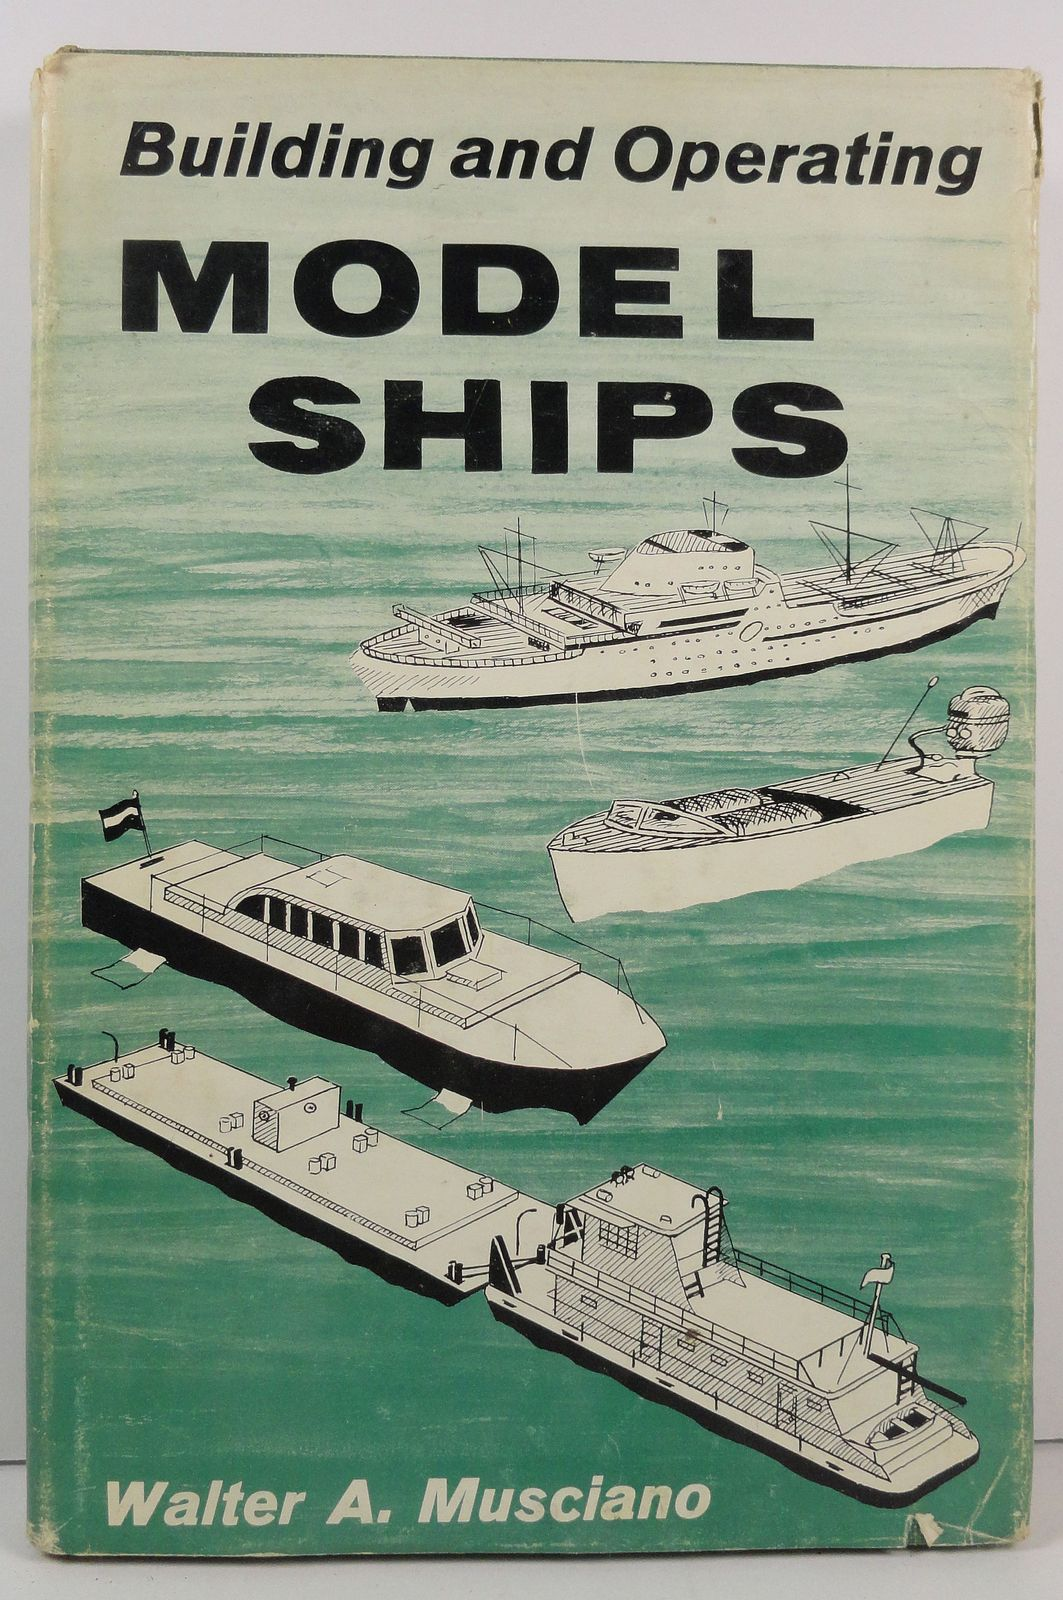 Building and Operating Model Ships by Walter A. Musciano